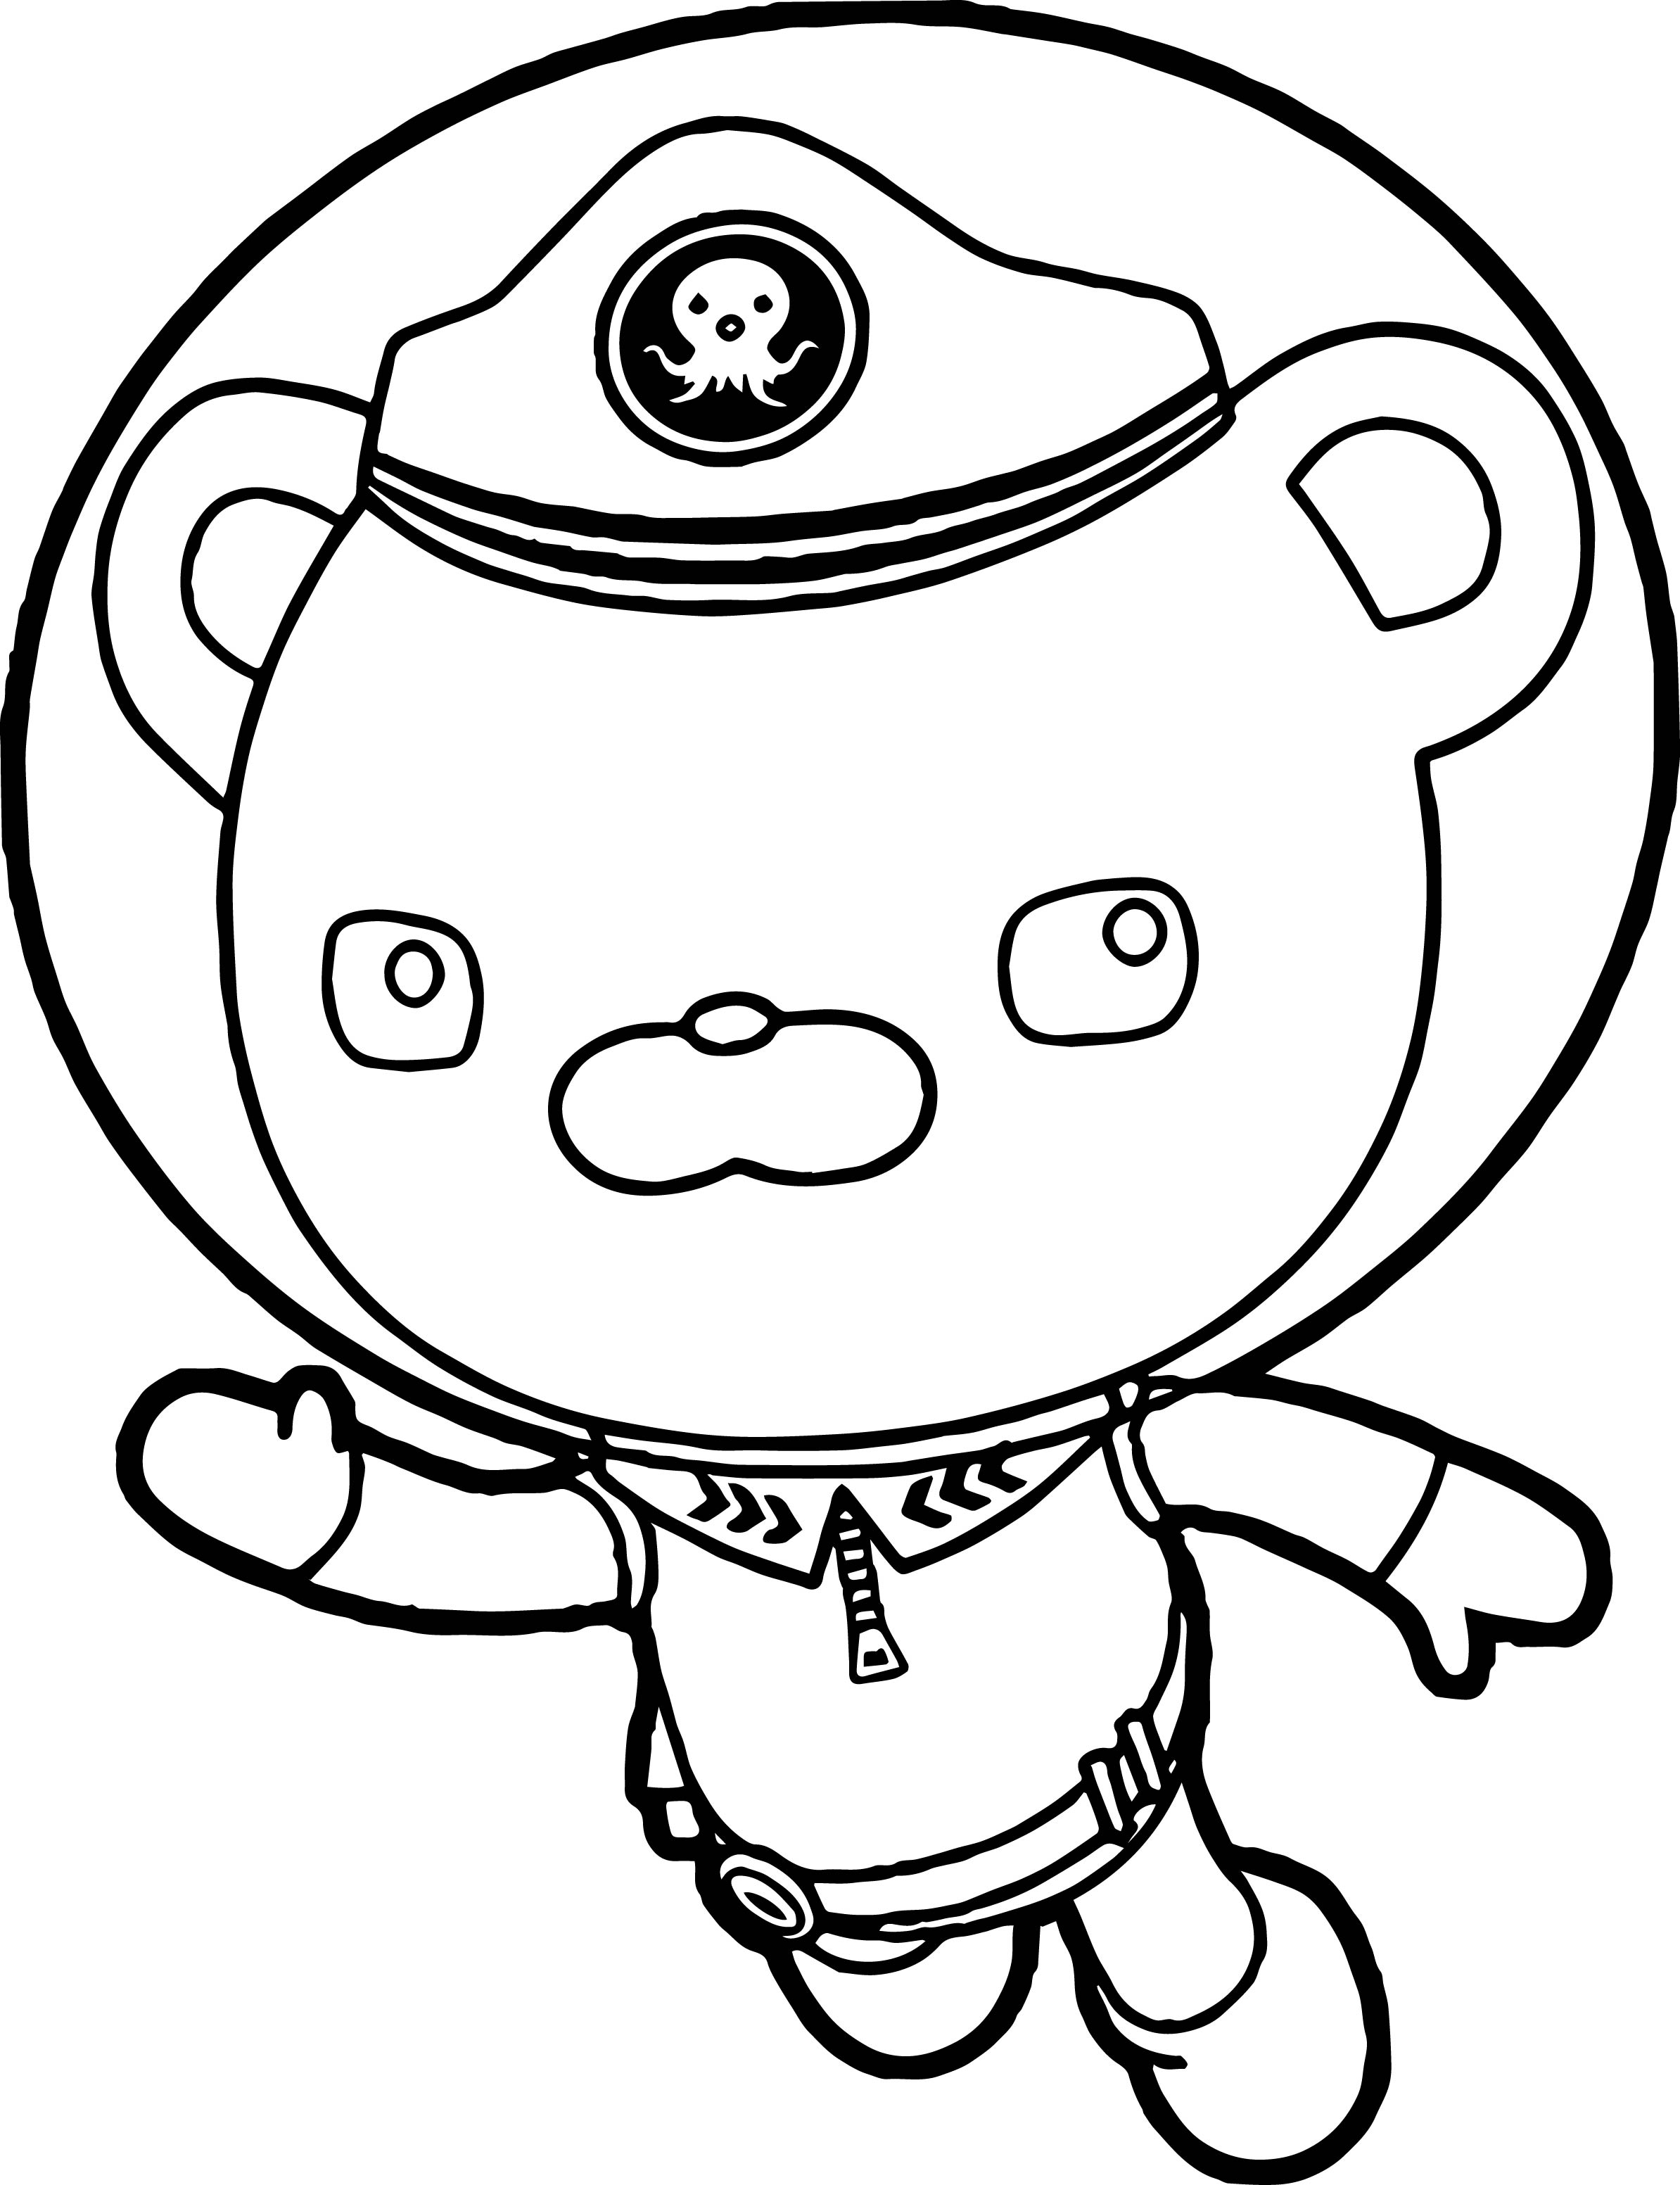 captain barnacles coloring pages coloring page base coloring pages for kids coloring coloring barnacles captain pages